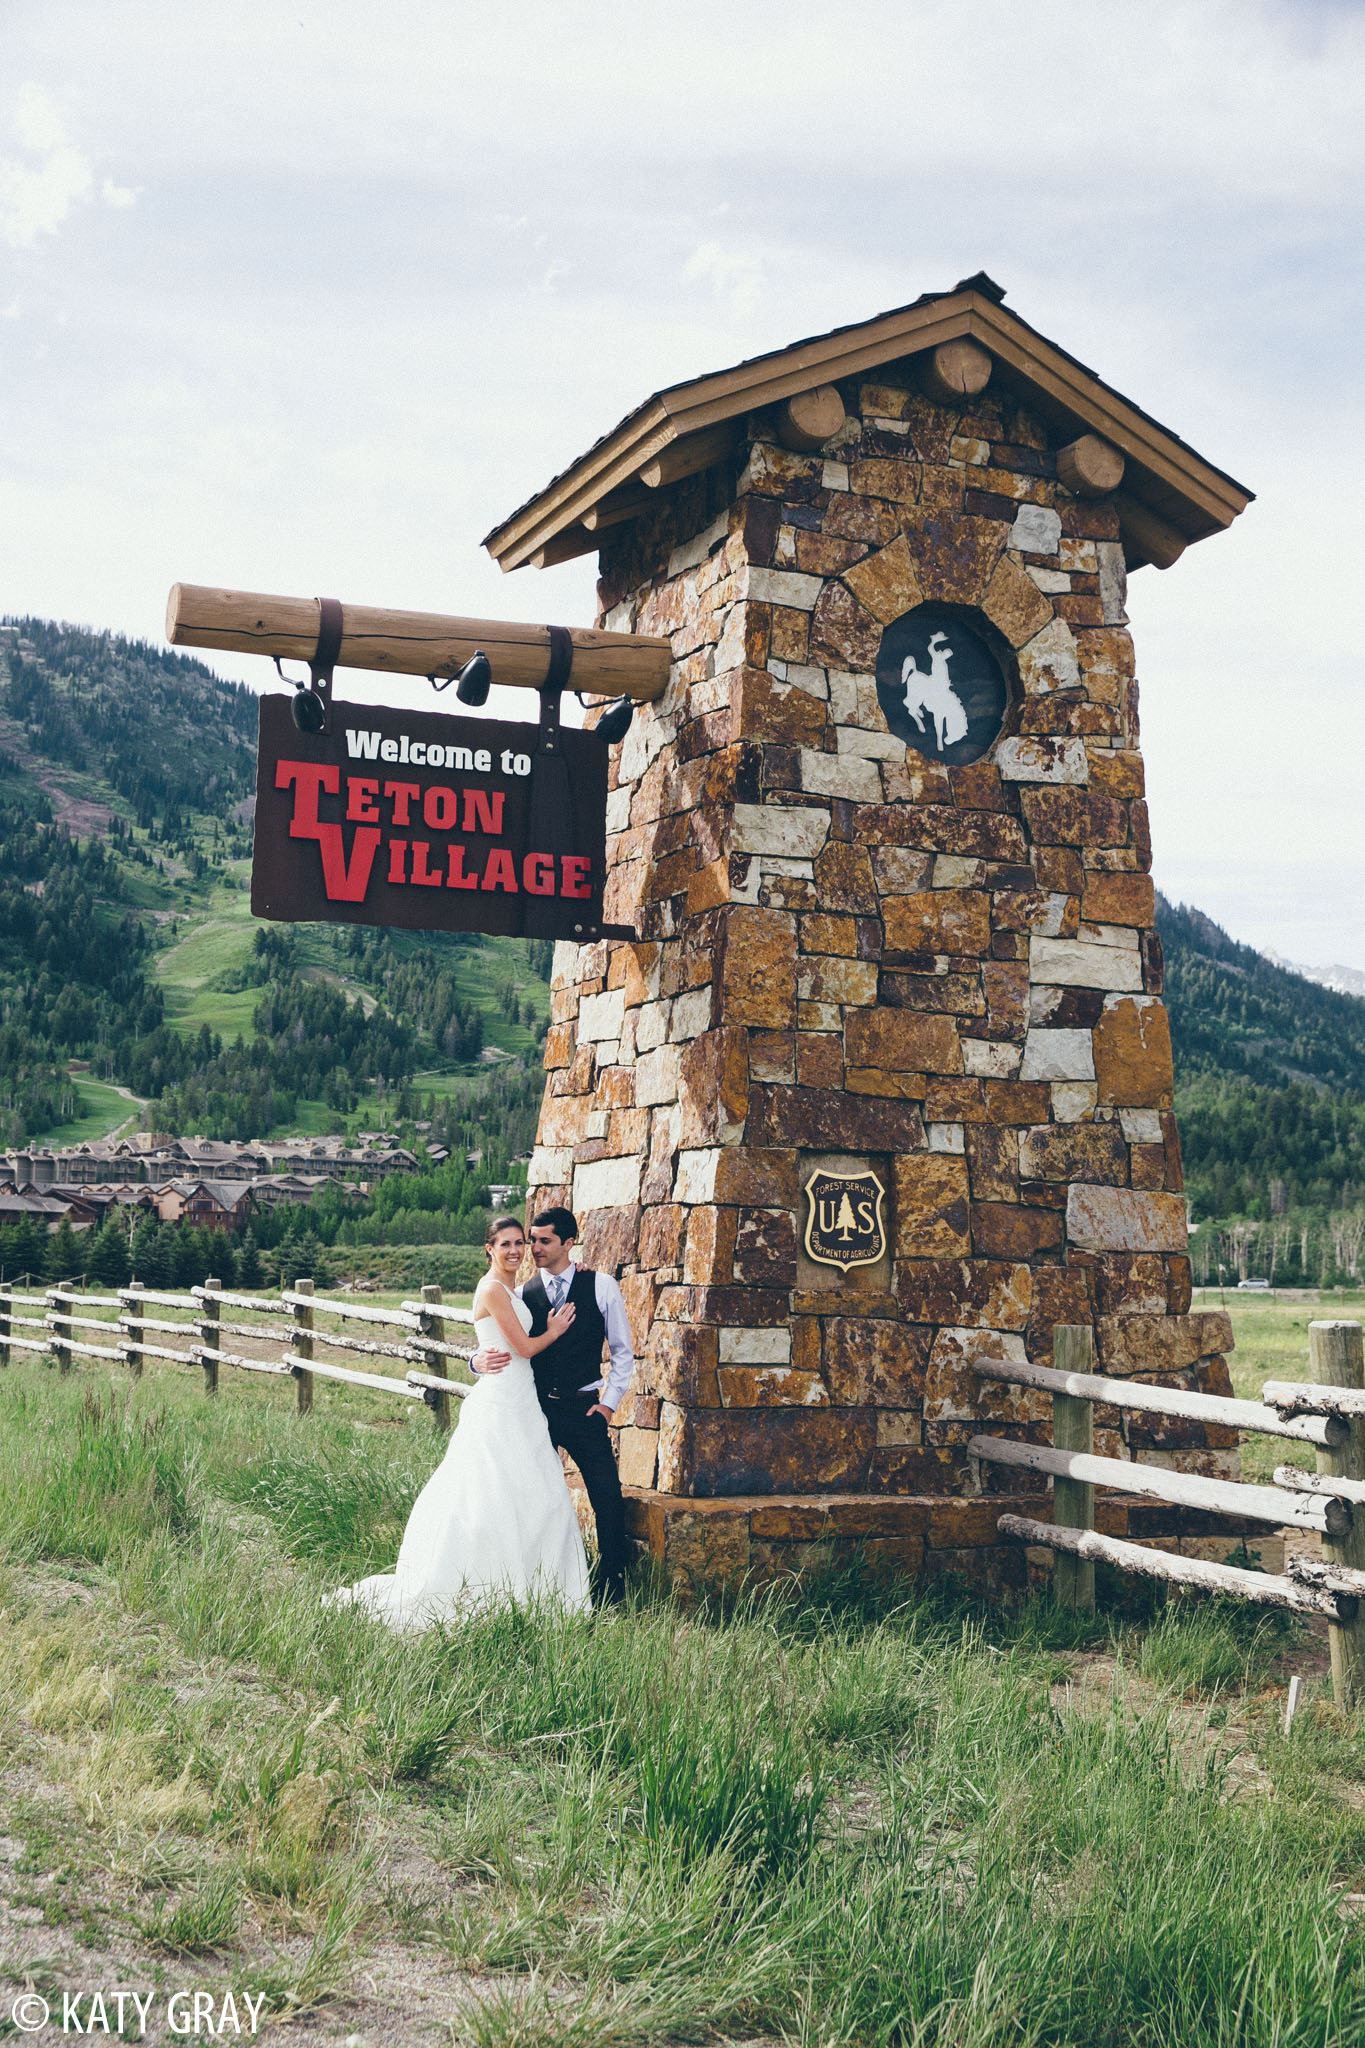 Teton Village wedding photo